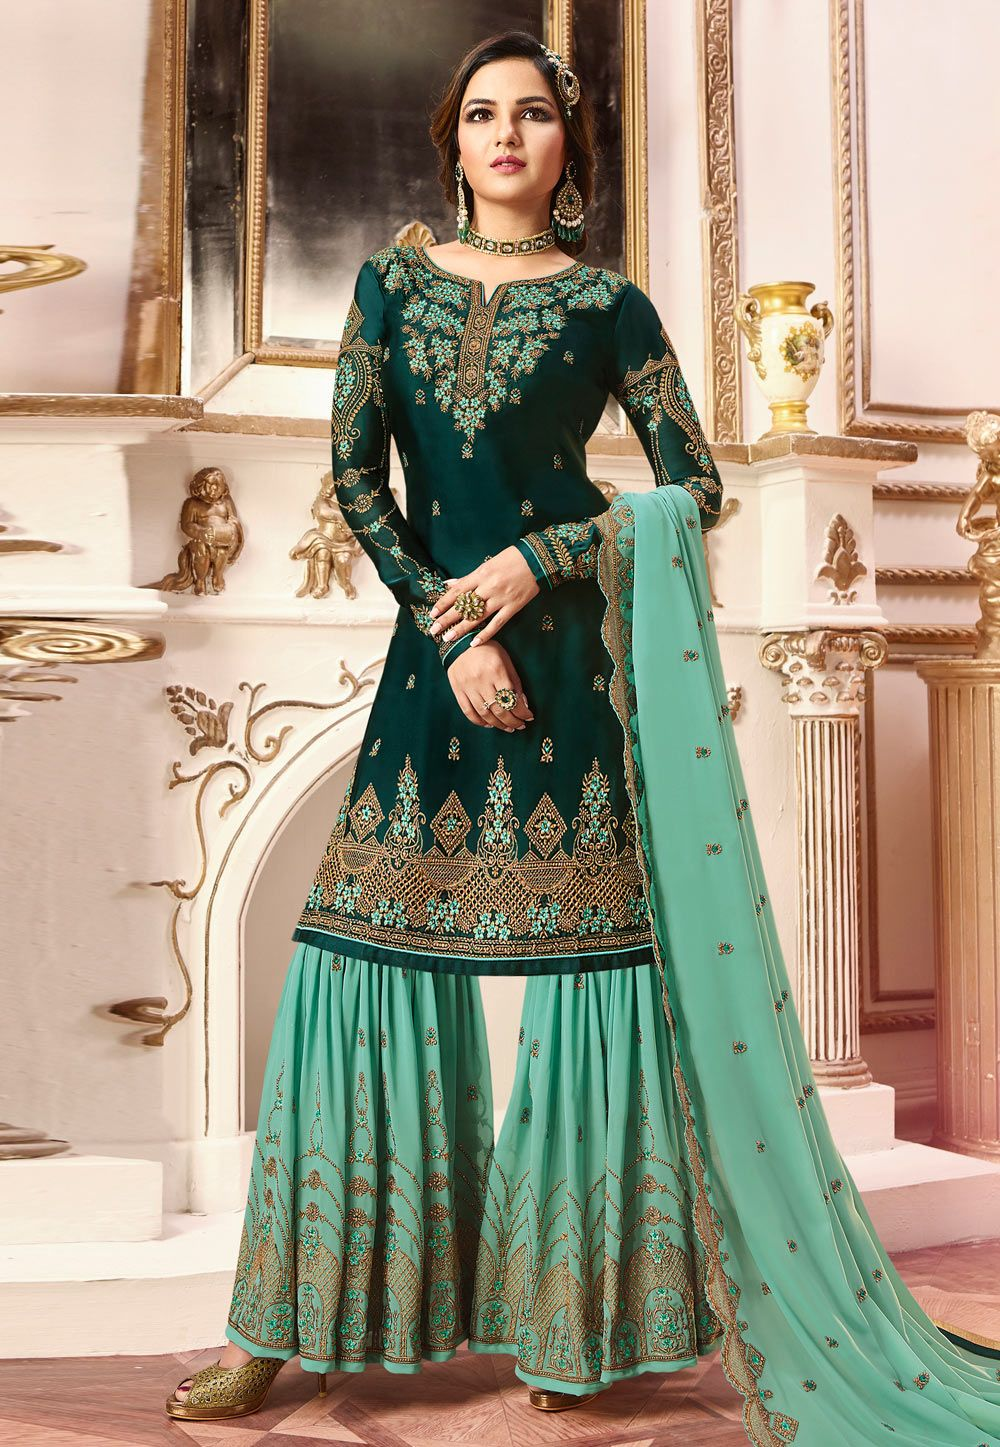 fbc0a851fe Buy Green Satin Sharara Suit 164297 online at lowest price from huge  collection of salwar kameez at Indianclothstore.com.